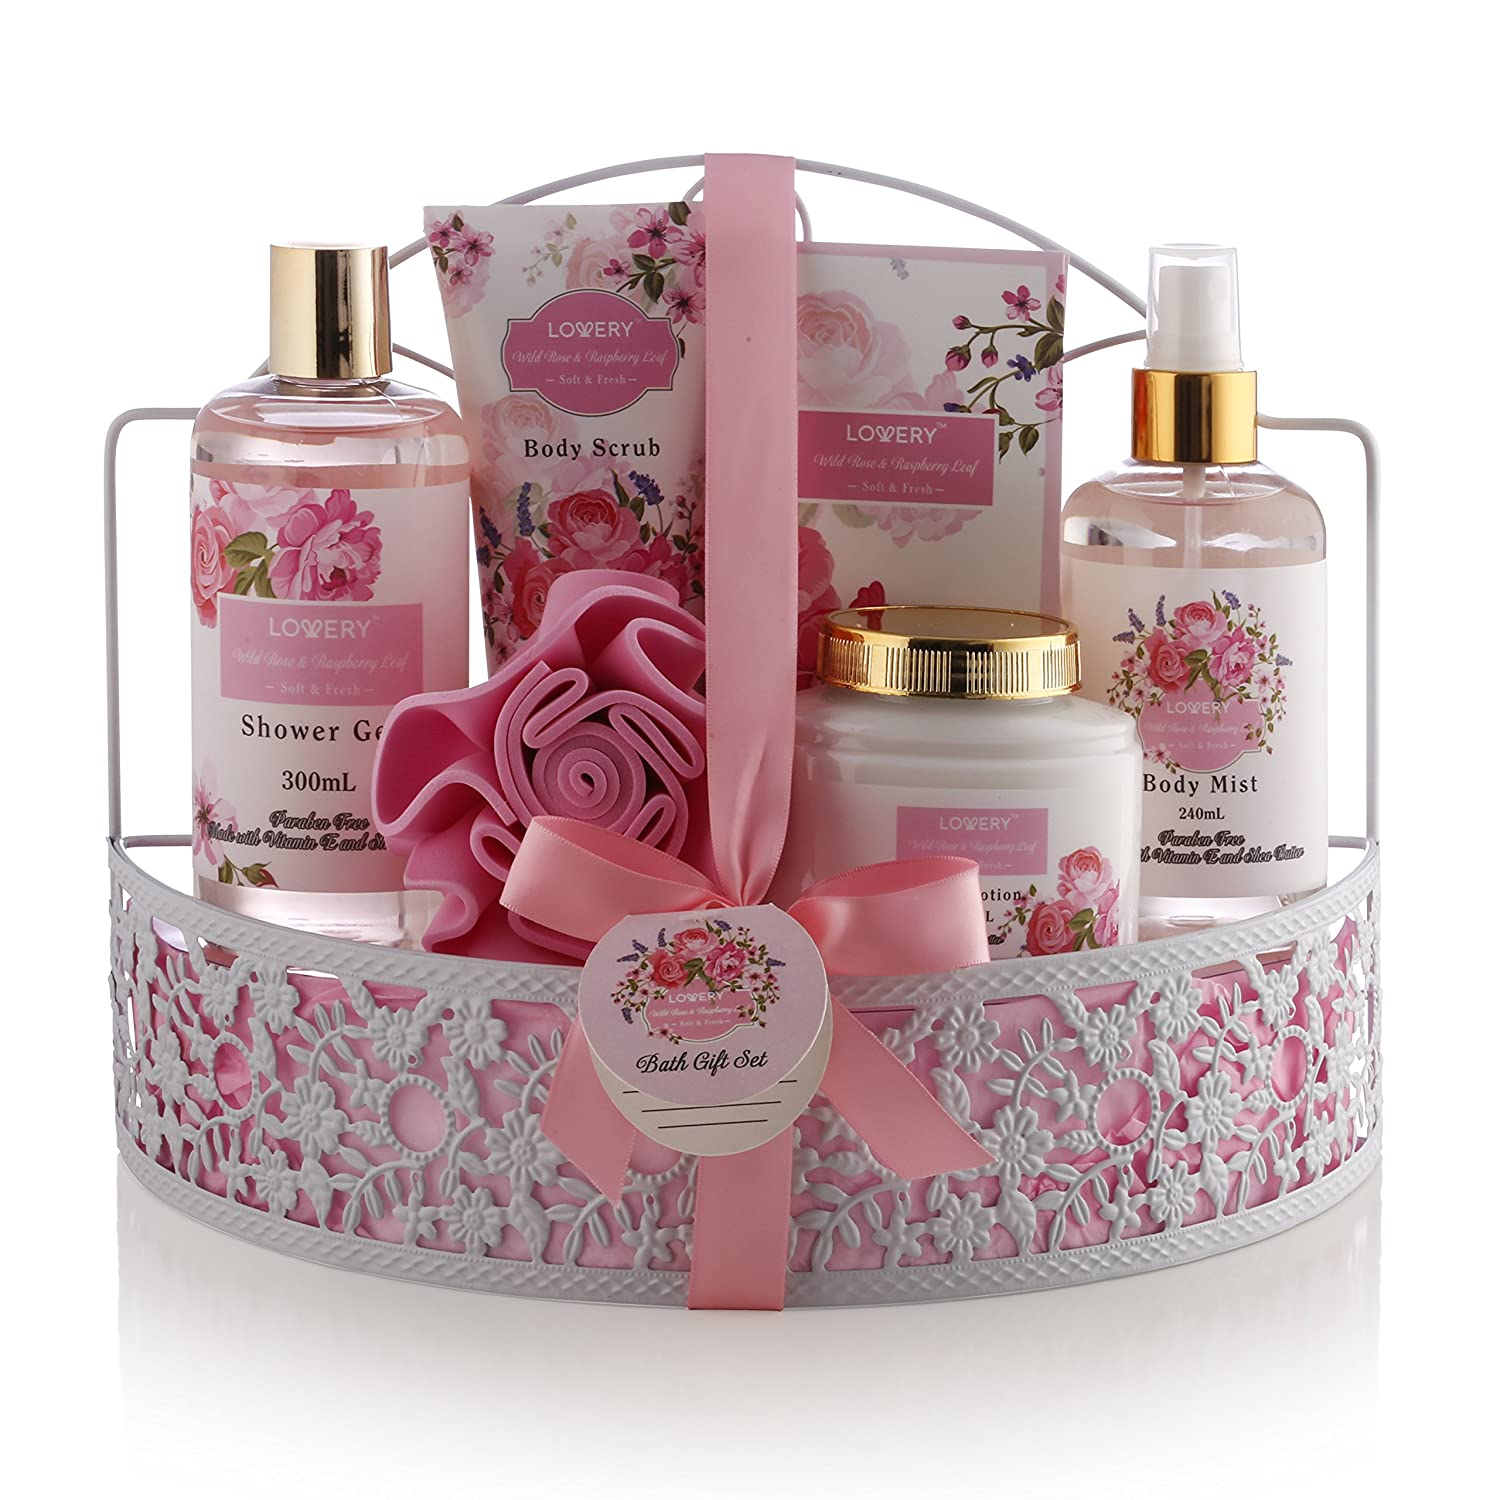 Father's Day Gifts - Spa Gift Basket - Wild Rose & Raspberry Leaf Fragrance - 7 Piece Bath & Body Set For Women, Contains Shower Gel, Lotion, Body Scrub, Bath Salt, Body Mist, Bath Puff & Shower Caddy Lovery